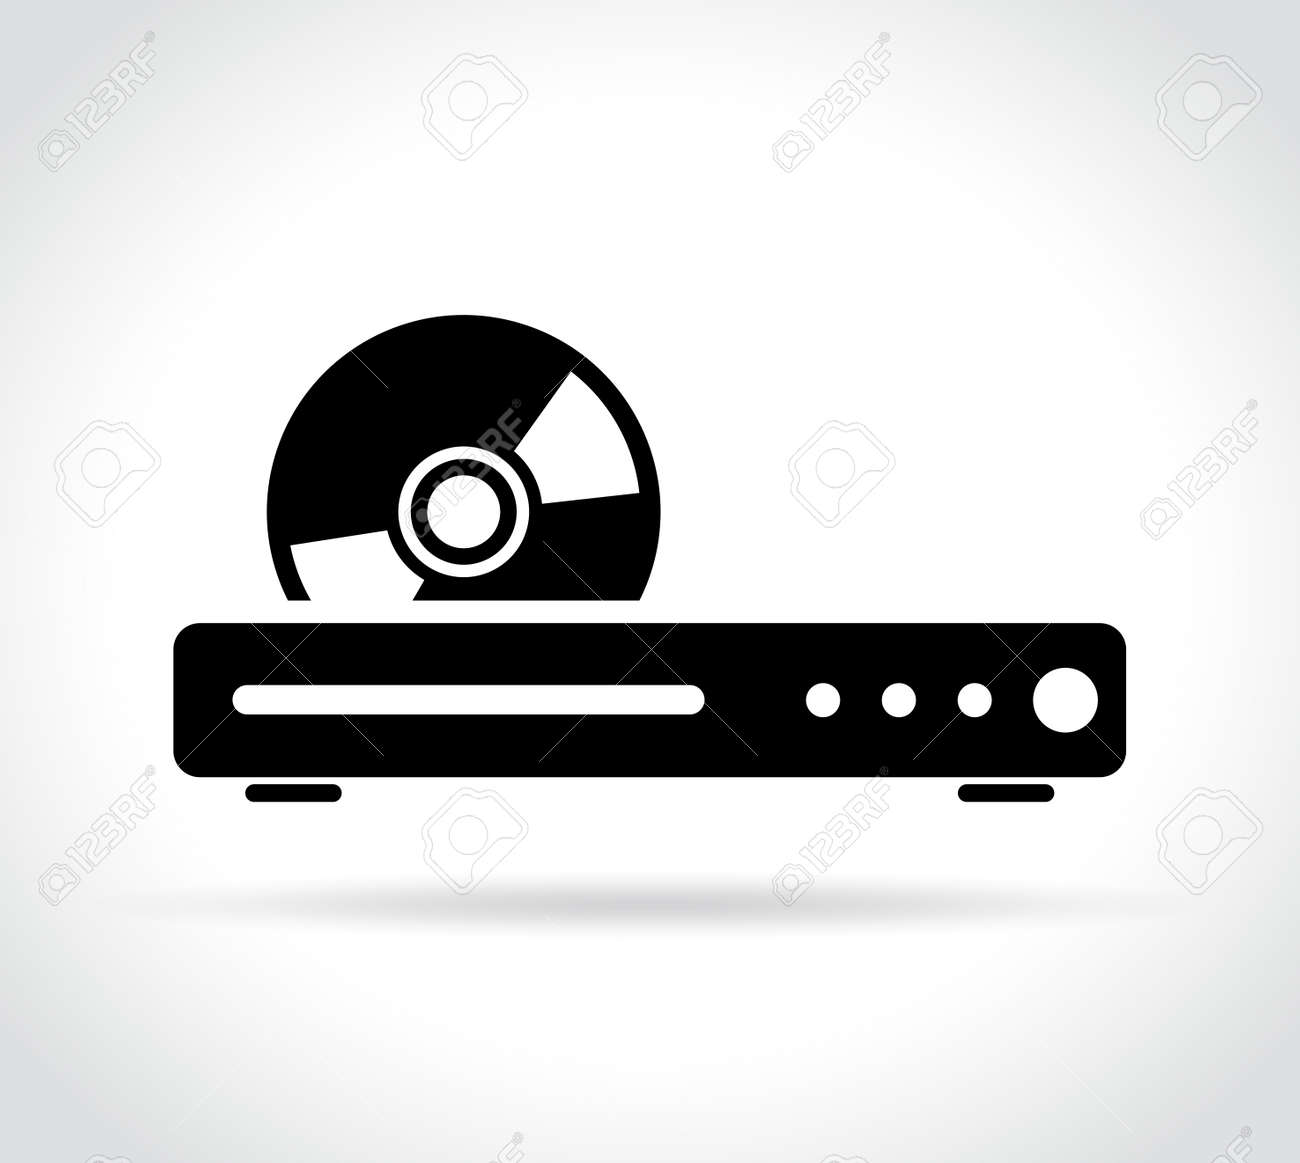 illustration of blue ray or dvd player icon royalty free cliparts vectors and stock illustration image 83753863 illustration of blue ray or dvd player icon